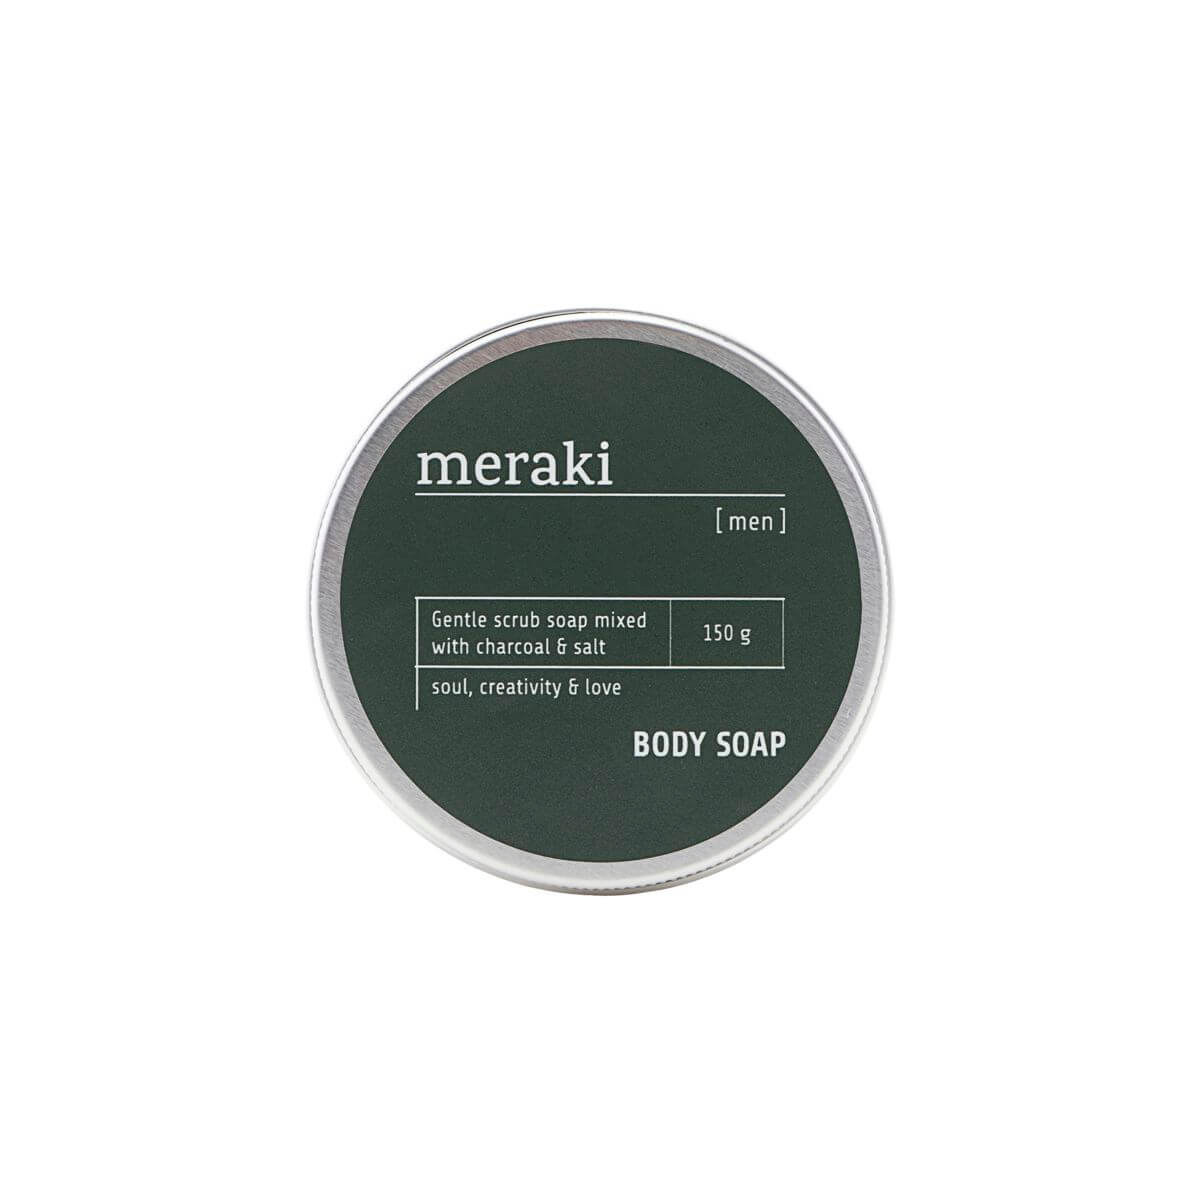 Meraki Body soap, Men, Charcoal & Salt, 150 g. image